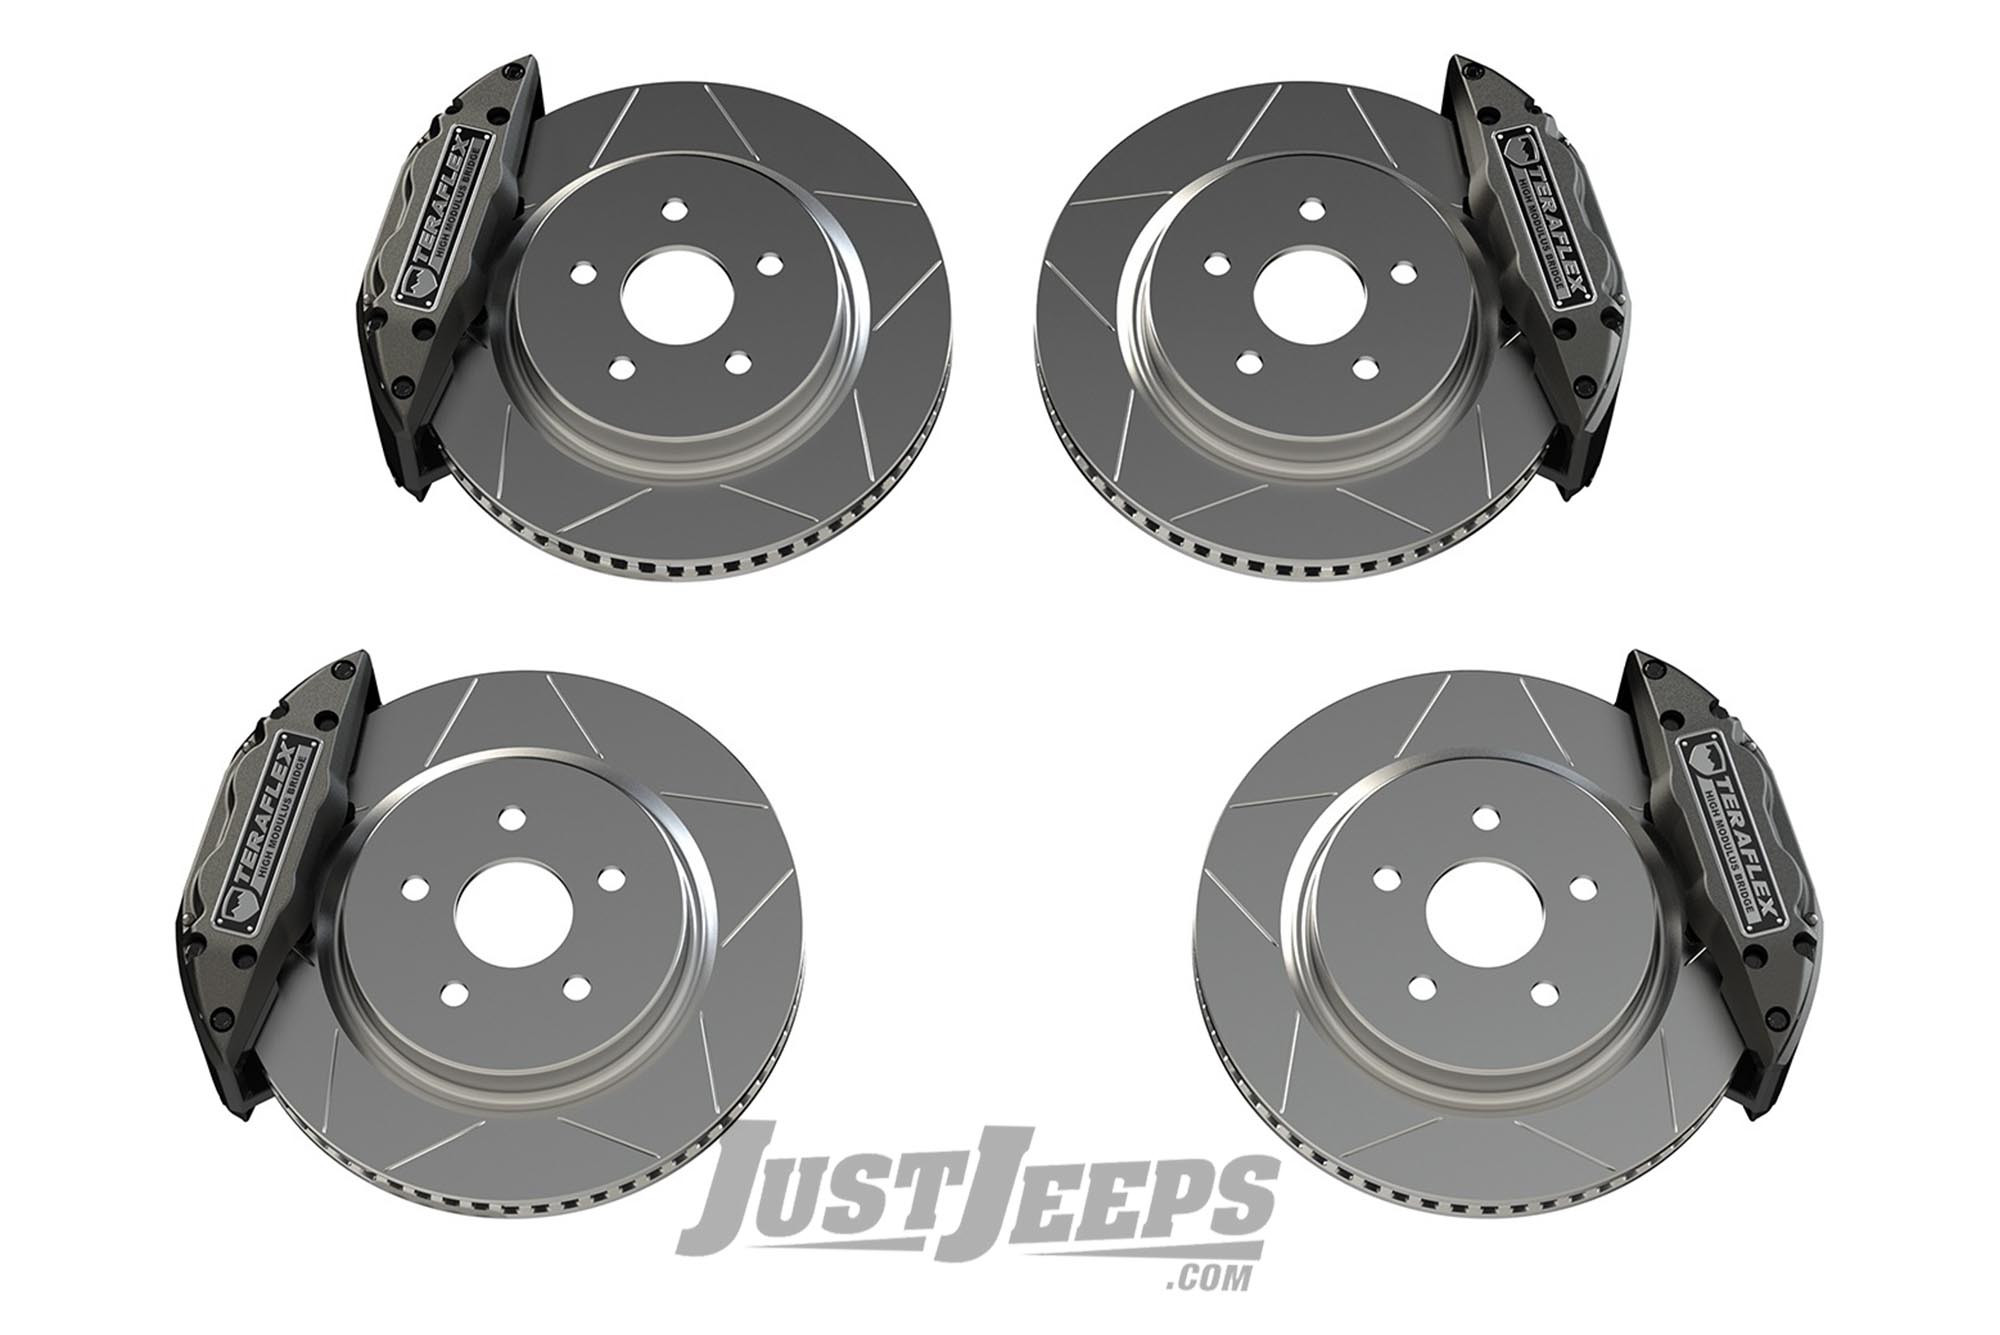 Teraflex Delta Front & Rear Brake Kit With 5x5 Bolt Pattern For 2007+ Jeep Wrangler JK & JL 2 Door & Unlimited 4 Door Models